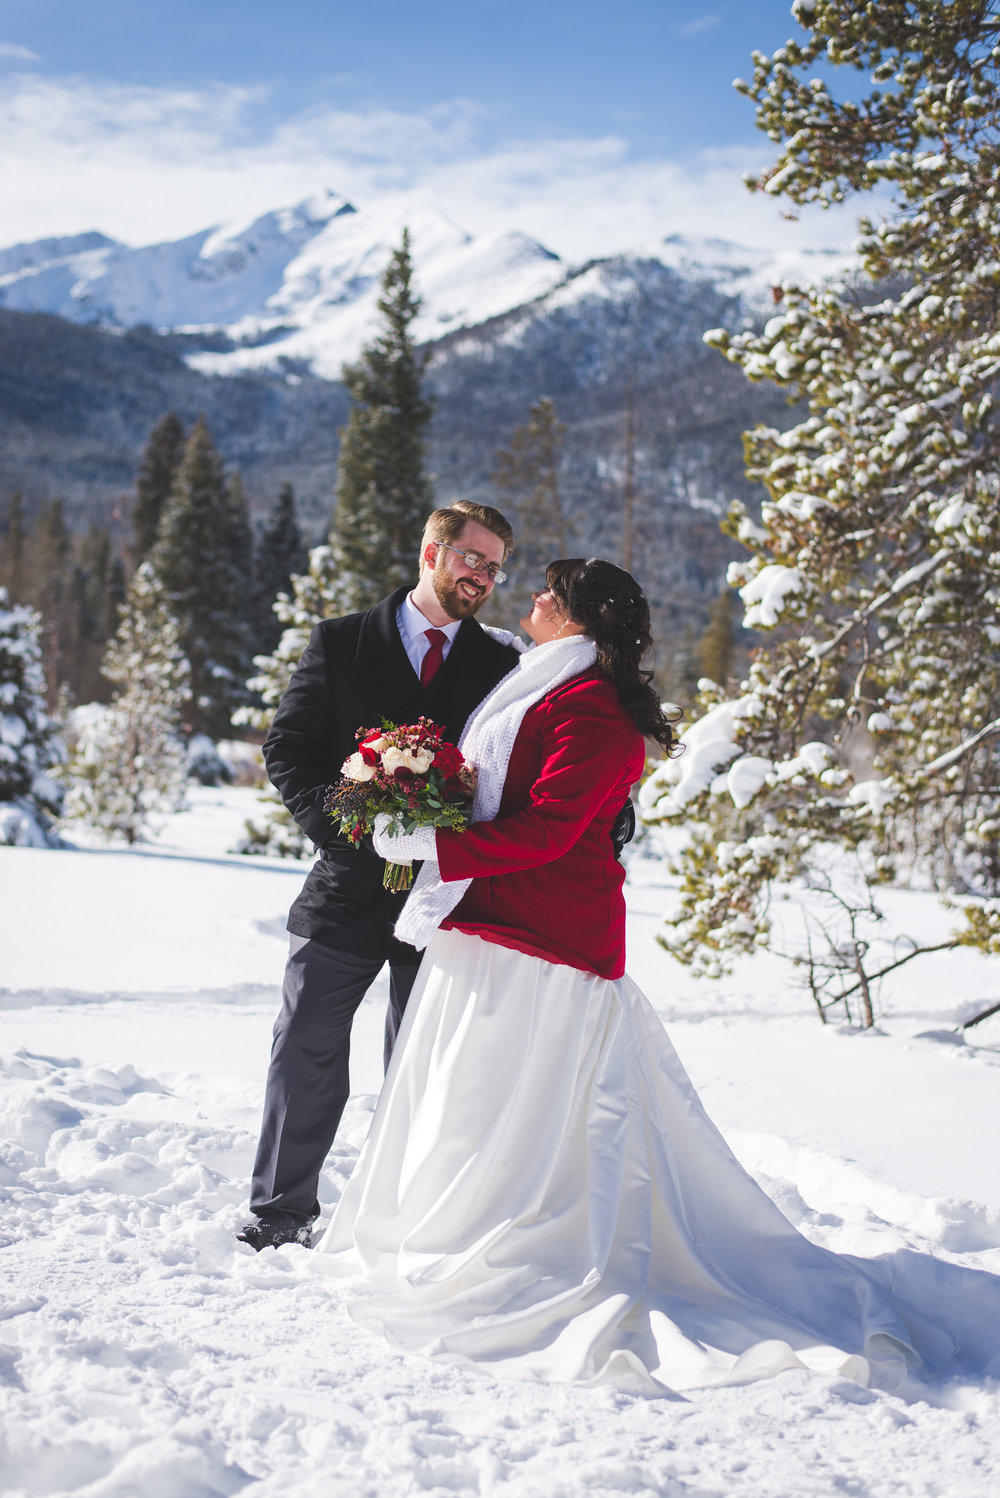 Peak One in Frisco, Colorado is the perfect, majestic mountain for a winter elopement backdrop!